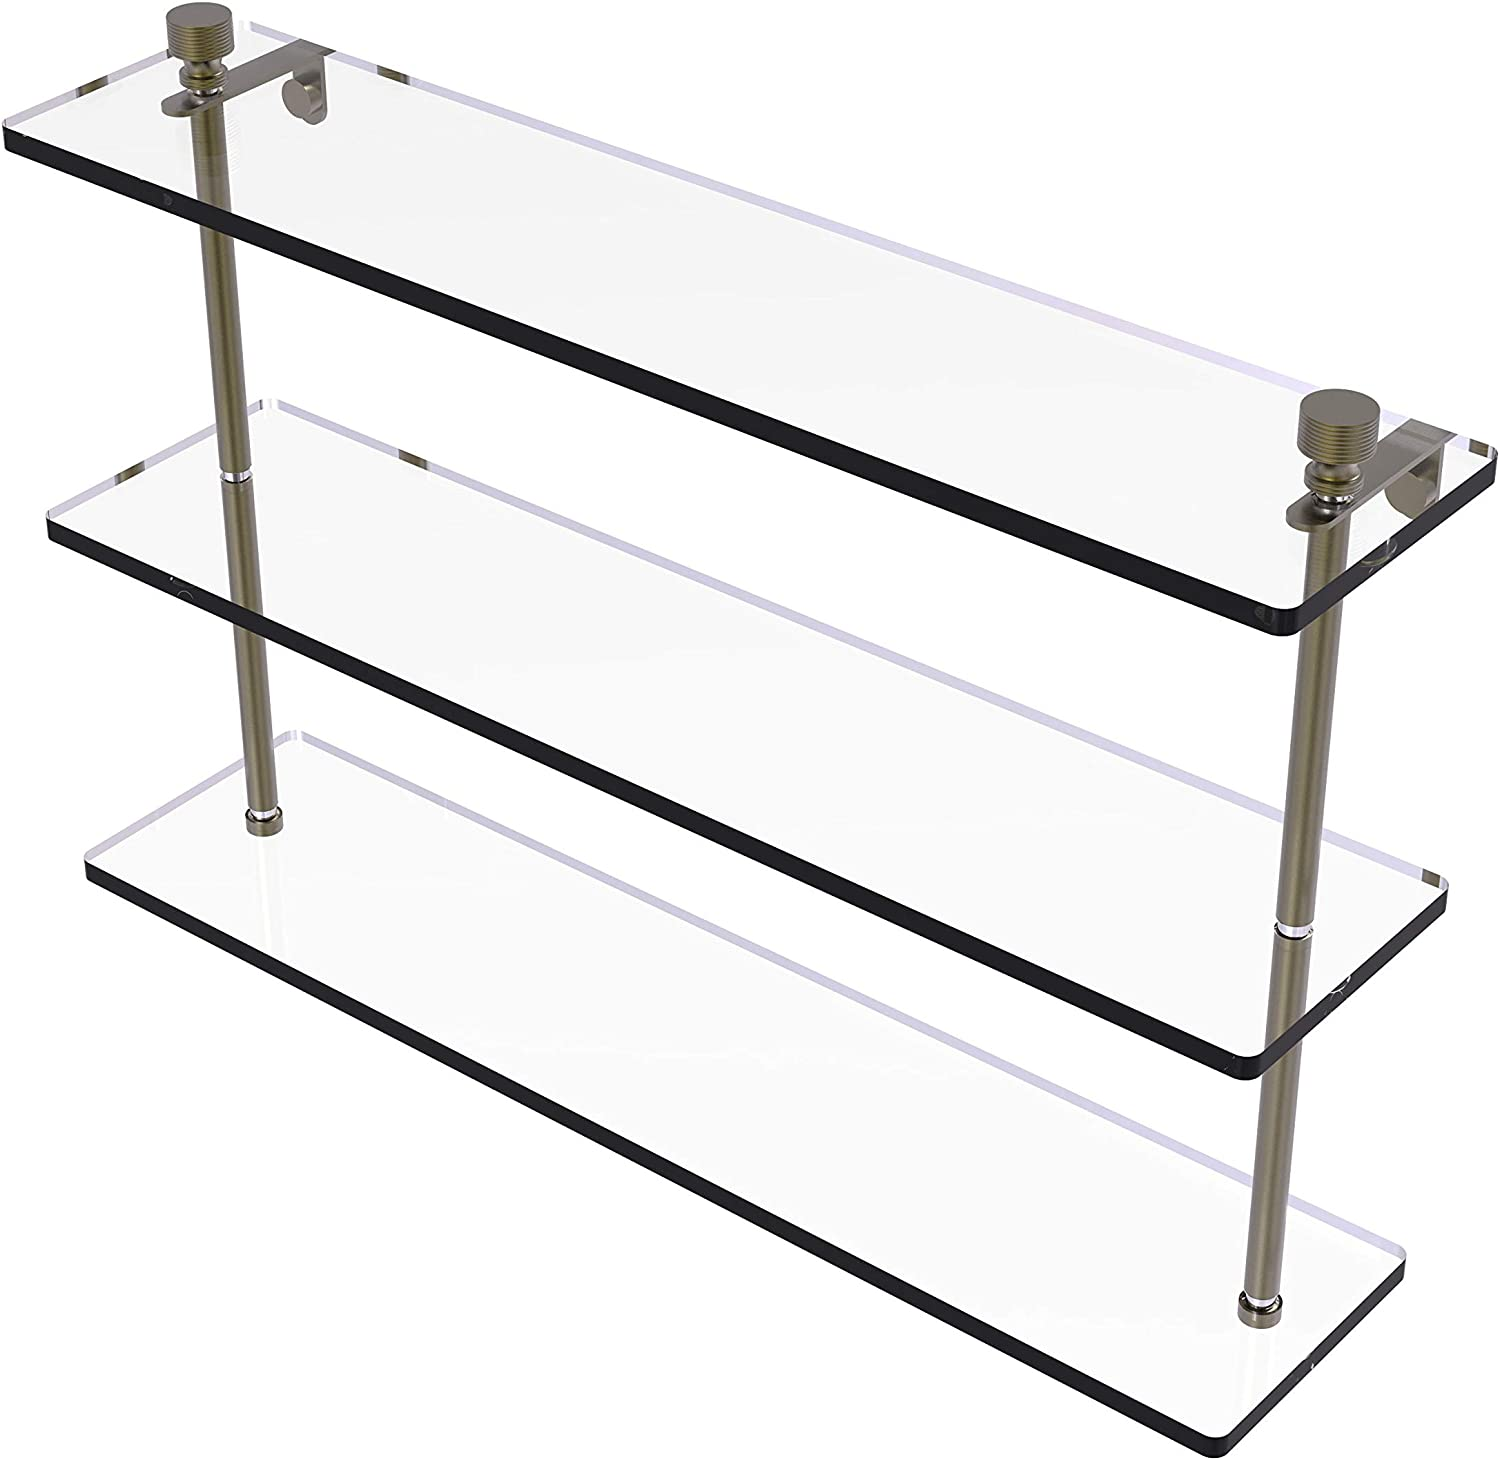 Allied Brass FT-1//16TB-ABR Foxtrot 16 Inch Glass Vanity Shelf with Integrated Towel Bar Antique Brass